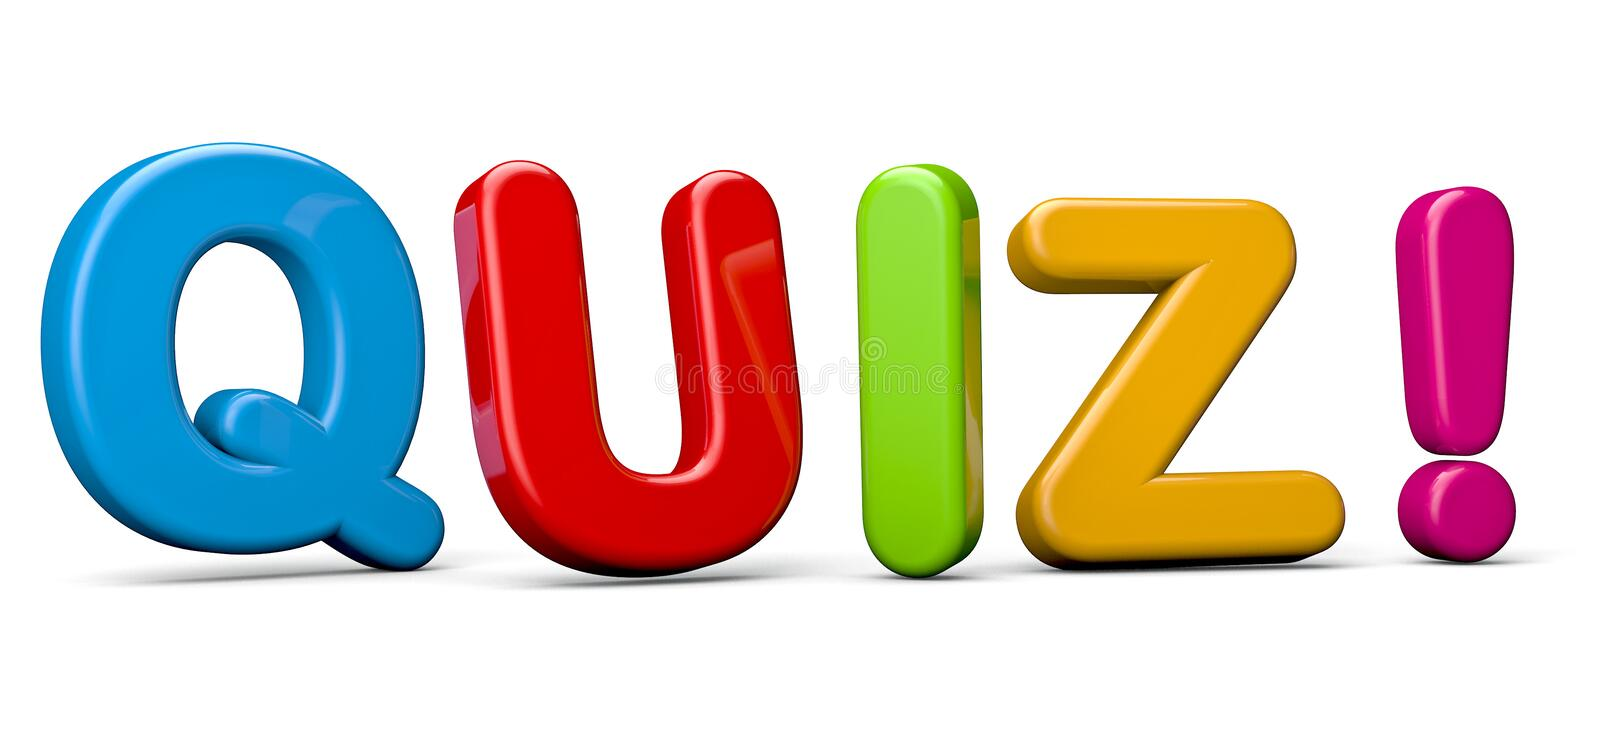 Quiz. The word Quiz in red 3D letters to illustrate an exam, evaluation or assessment to measure your knowledge or expertise